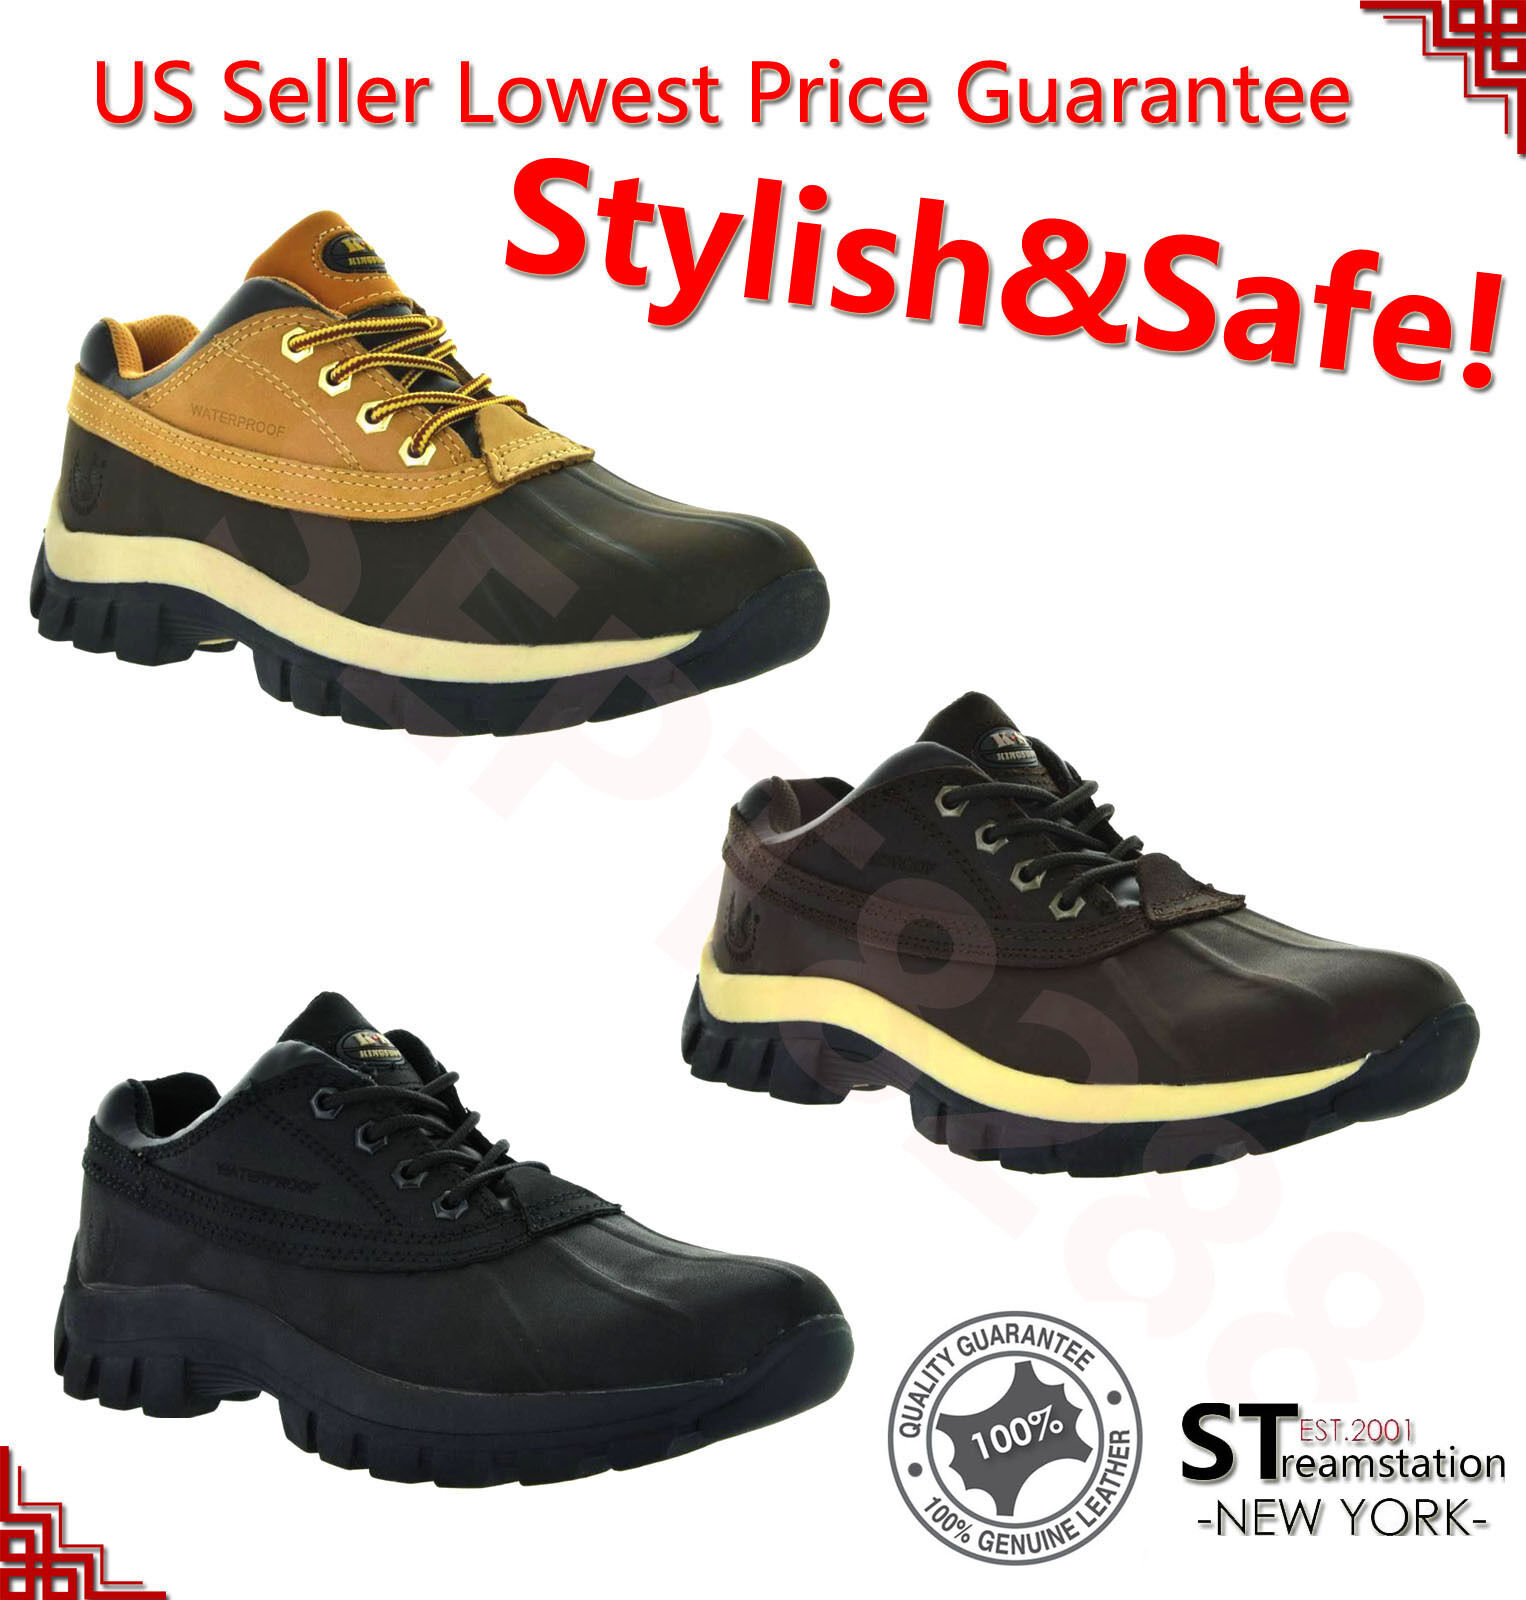 "Boots - Mens Work Boots 4"" Short Winter Snow Boots Work Shoes Leather Waterproof 3017"